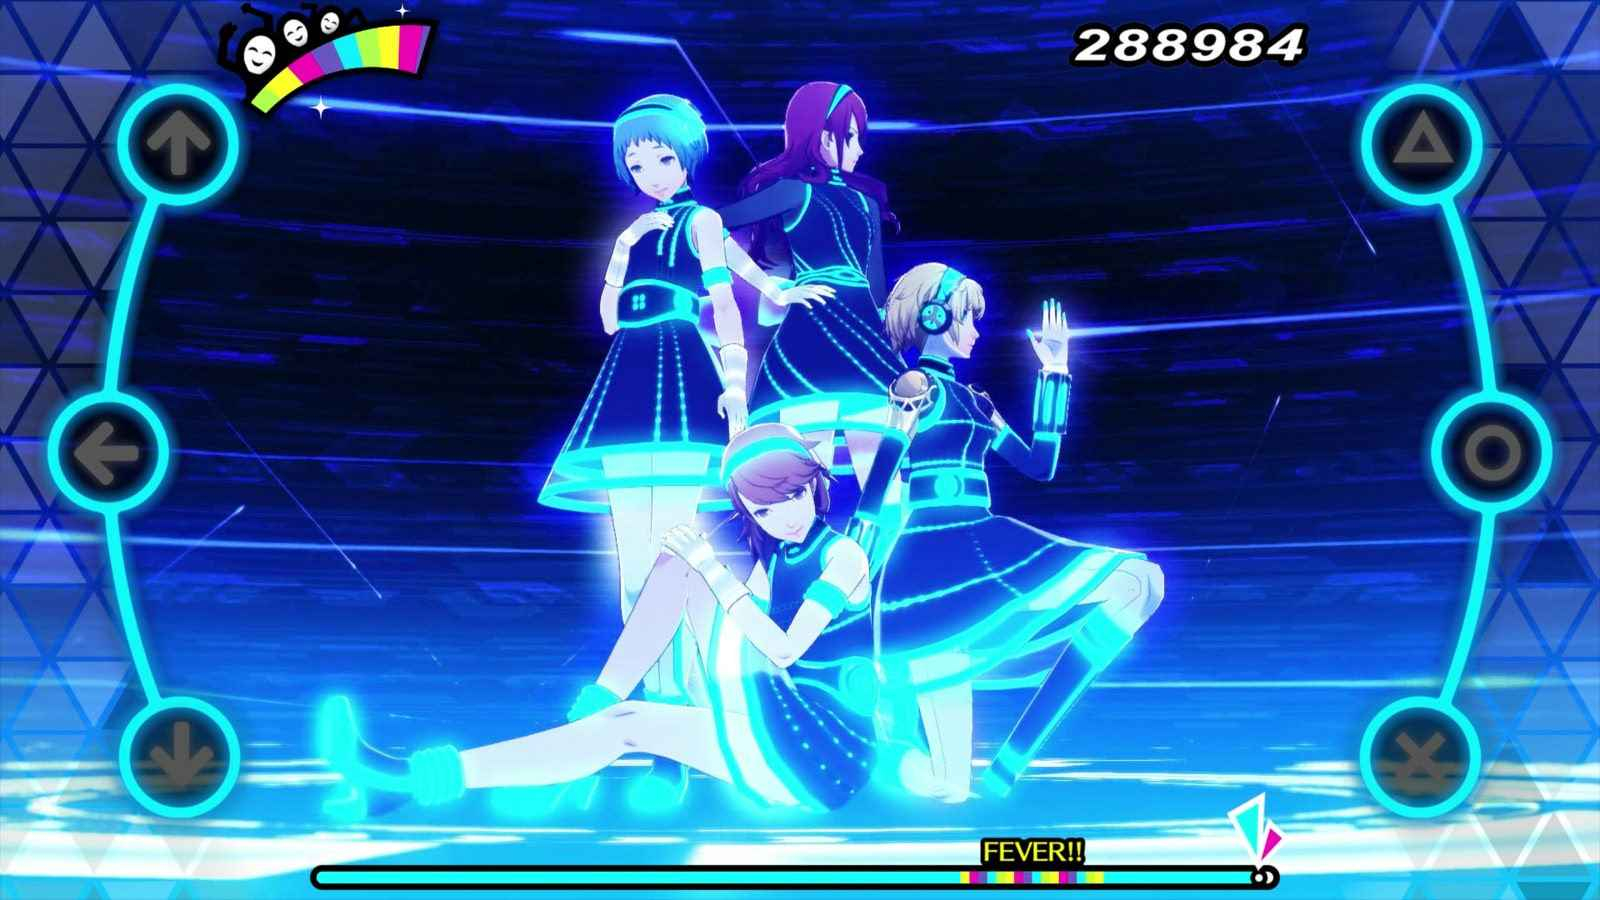 Two Persona Dancing Games Coming to the West For PS4 And Vita